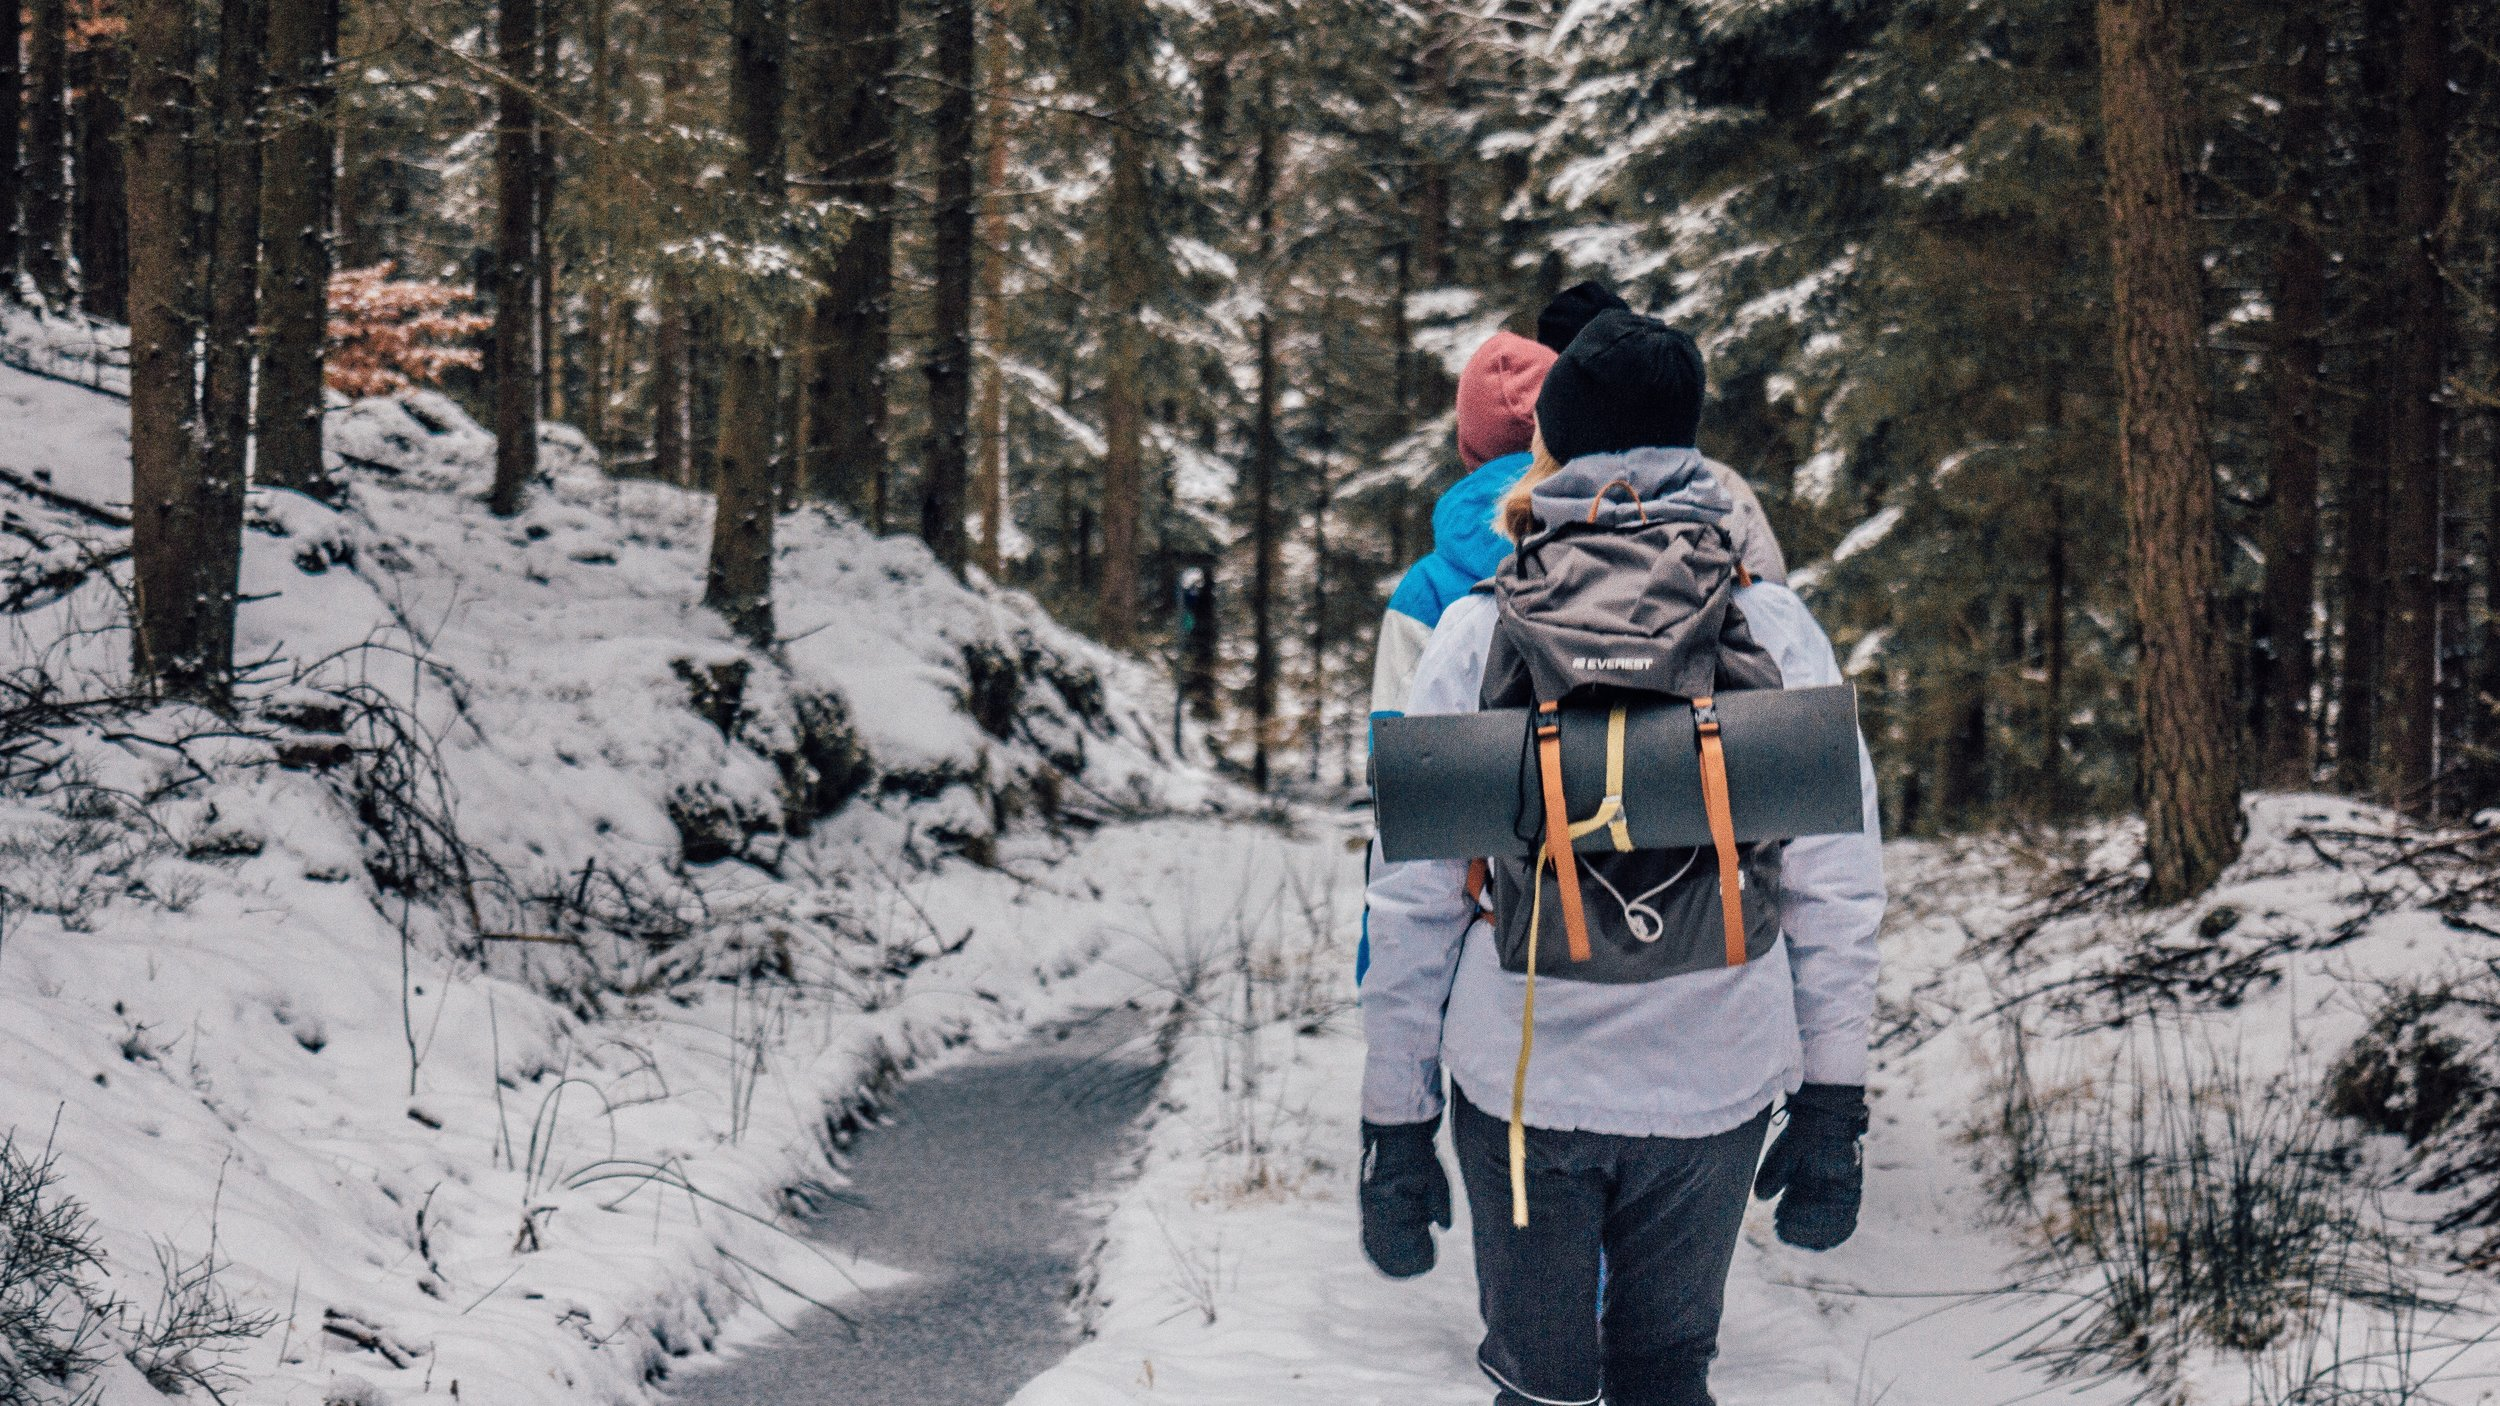 winter hike in the snow by a stream